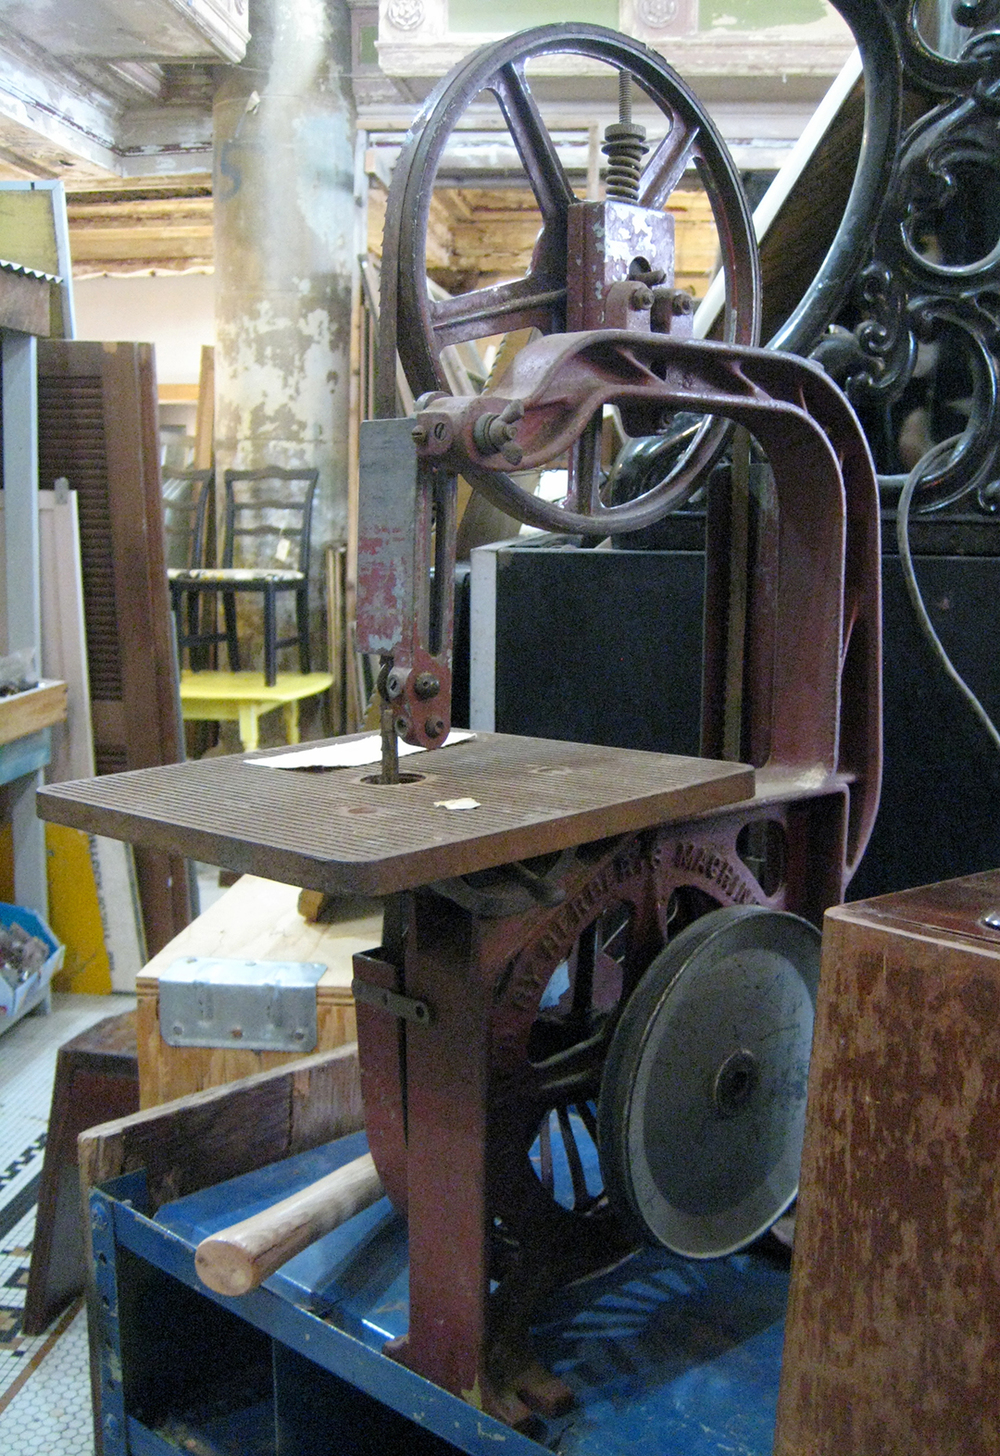 Old bandsaw. Get it while you can!